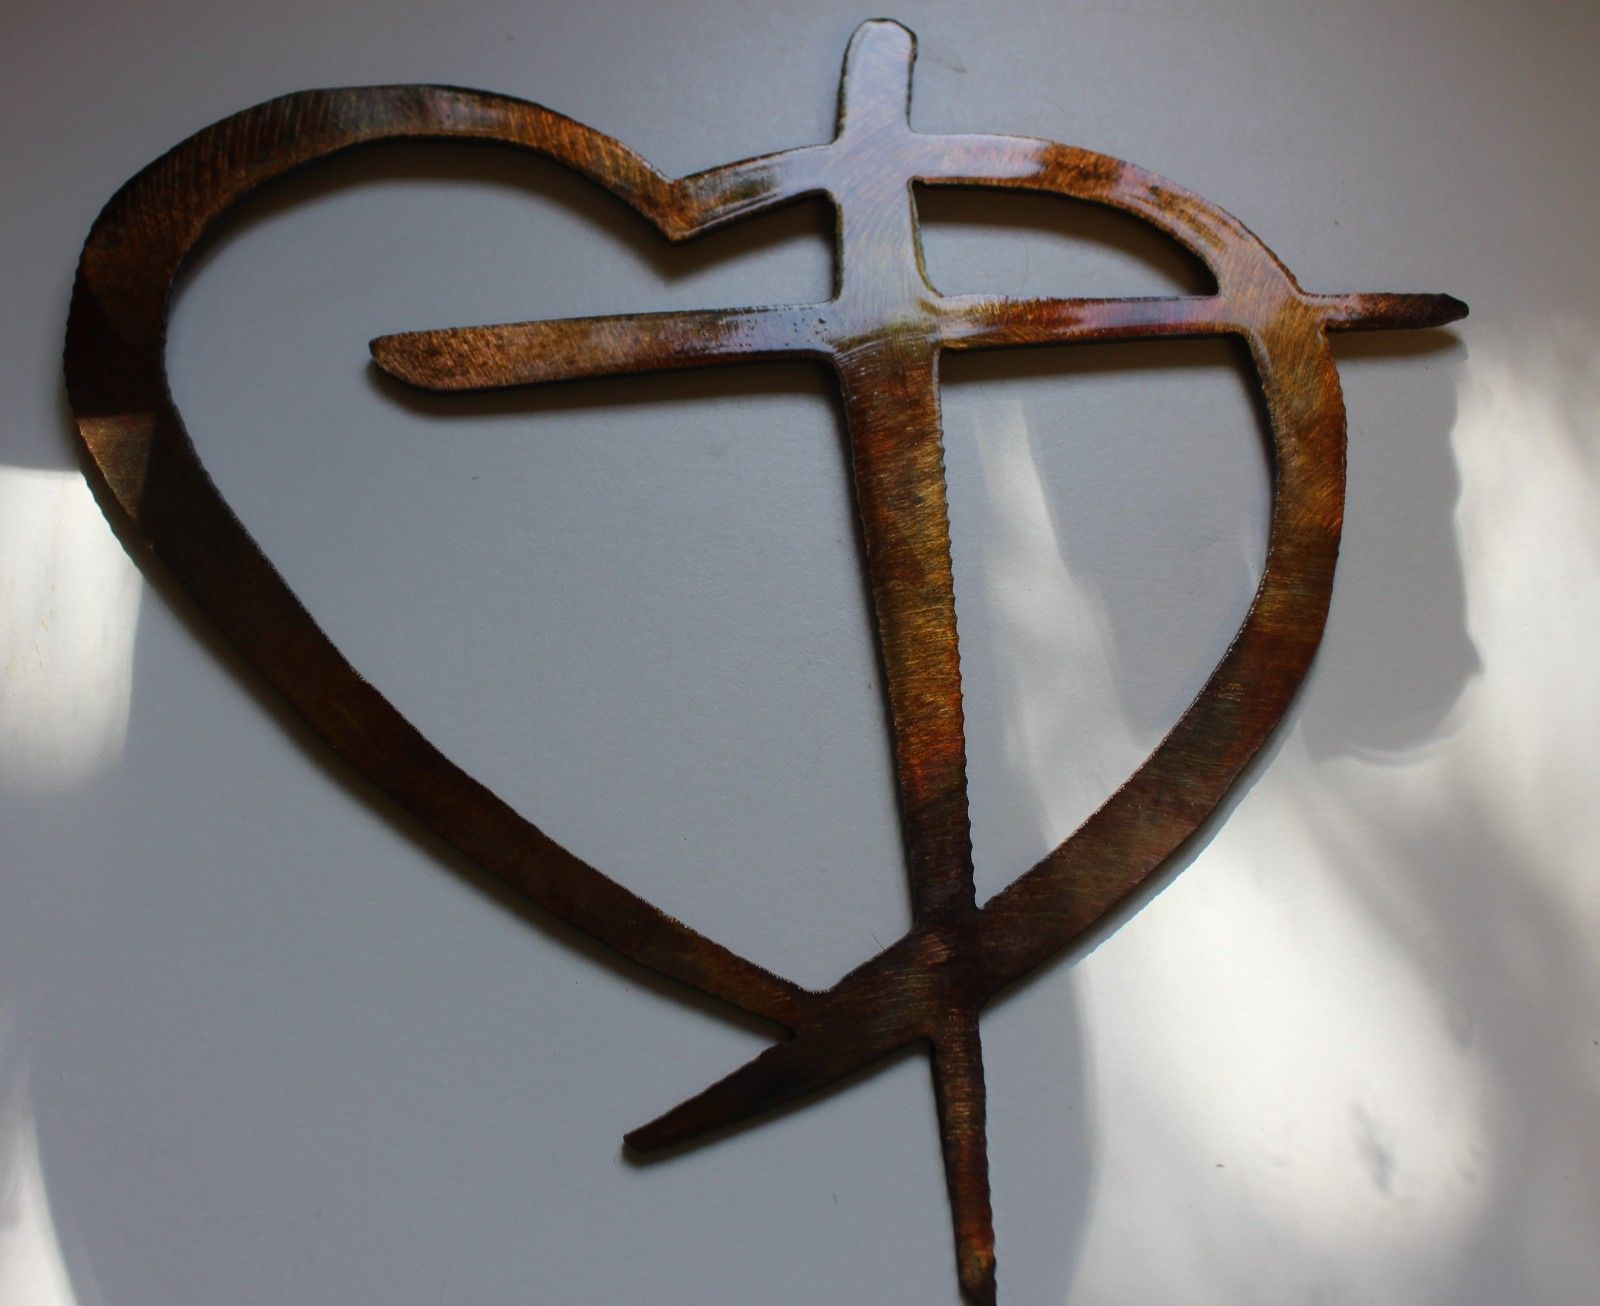 Heart U0026 Cross Copper/Bronze HANGING METAL WALL ART DECOR